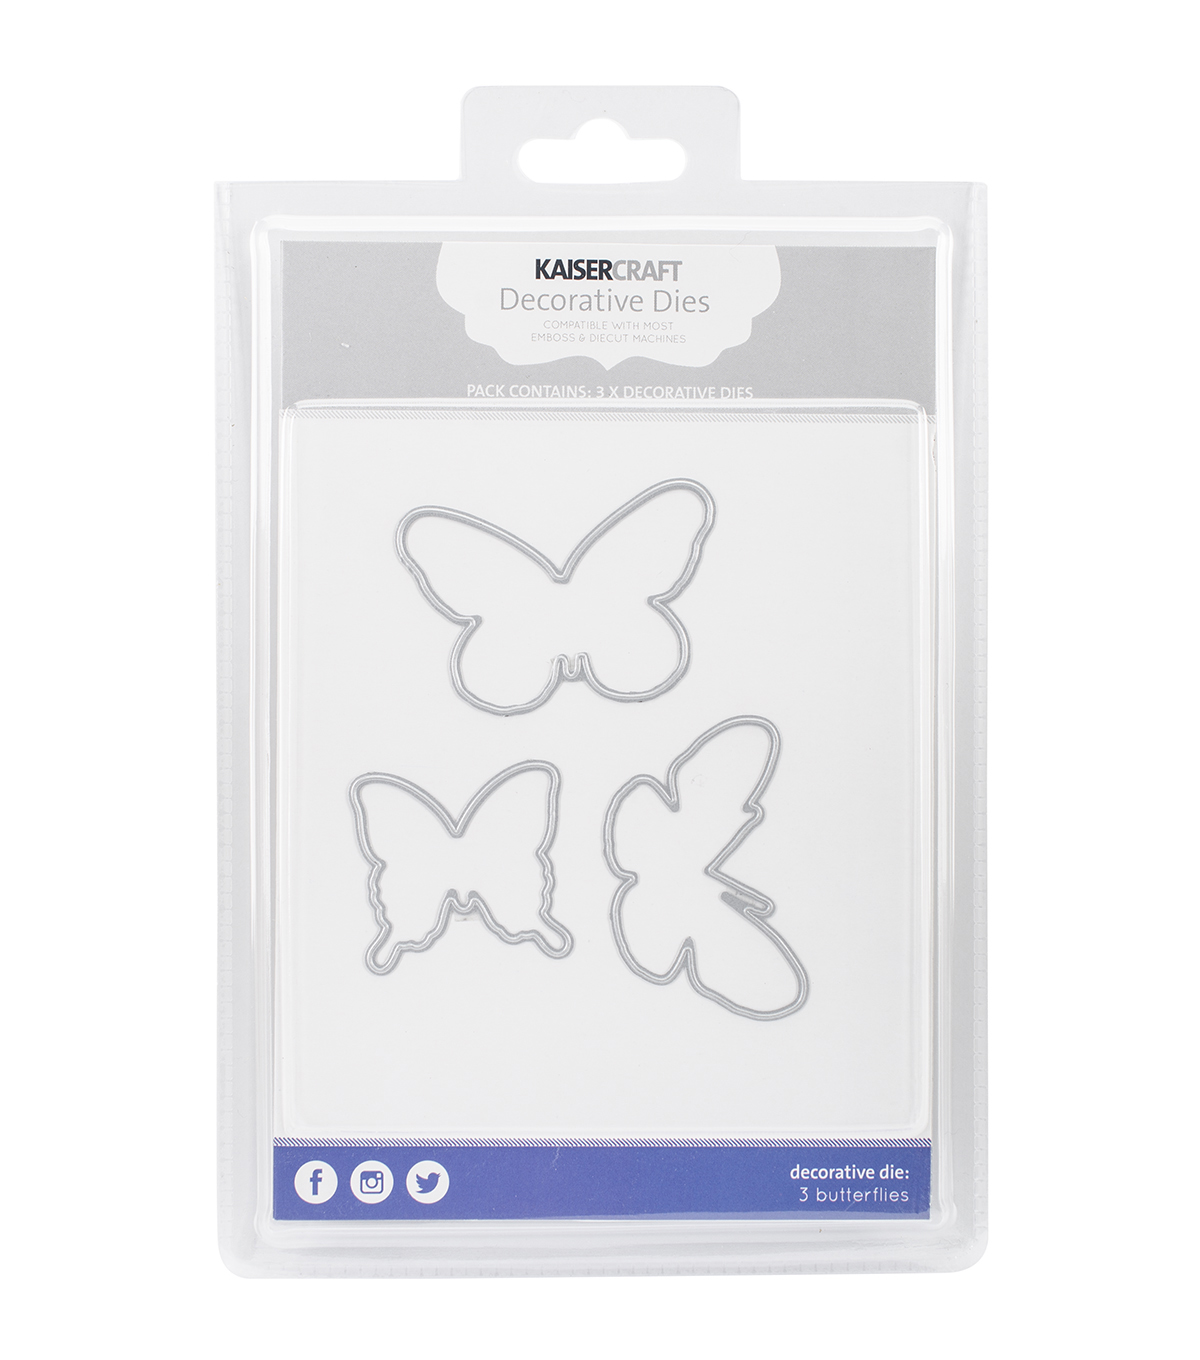 Kaisercraft Decorative Dies-3 Butterflies